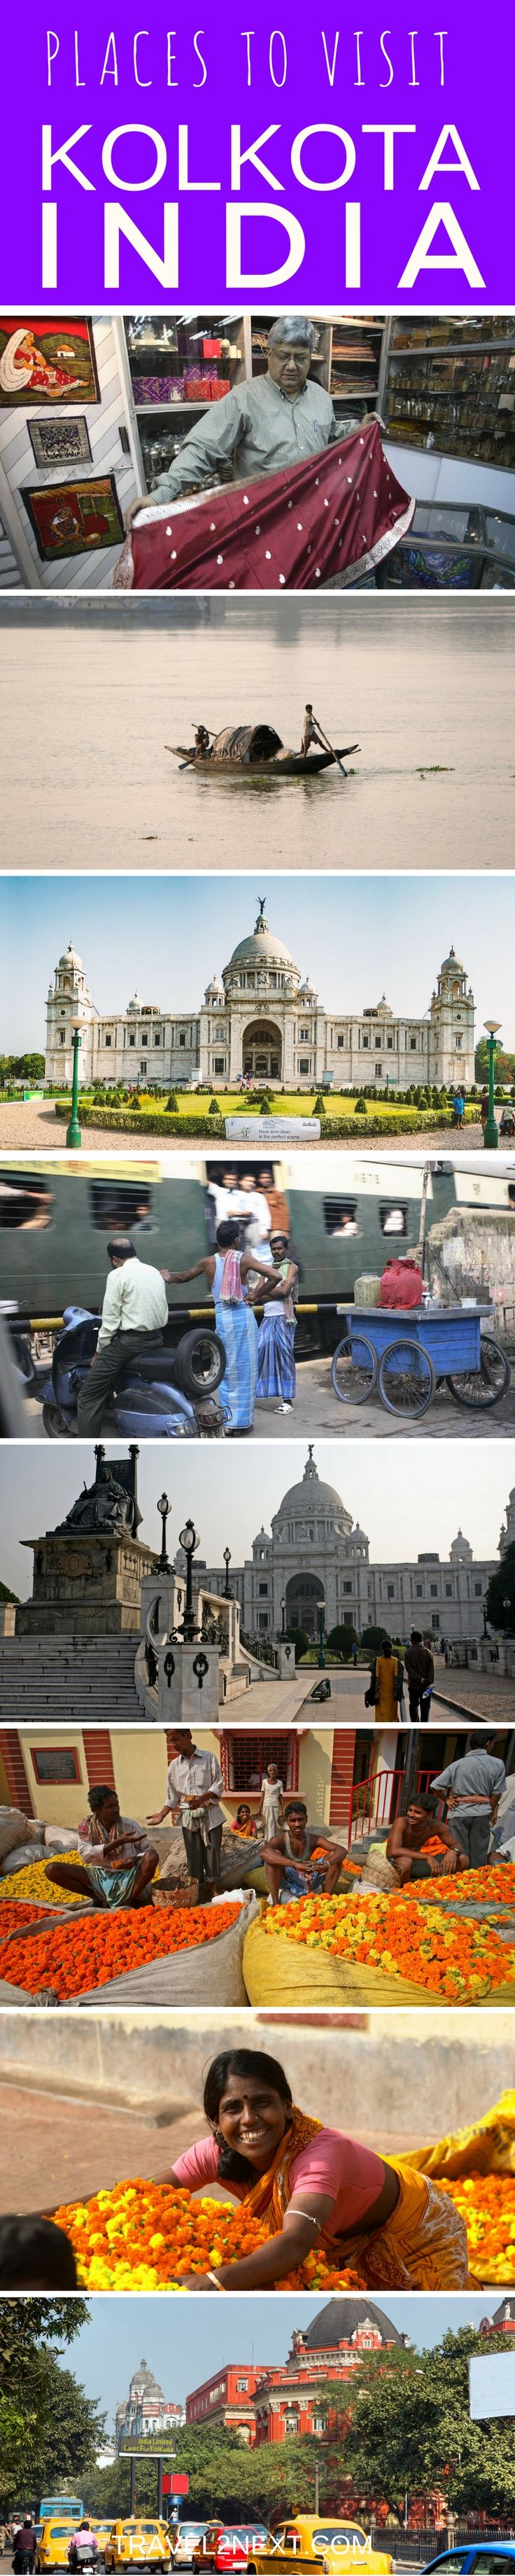 Places to visit in Kolkata in India. Here are some great reasons to go visit.